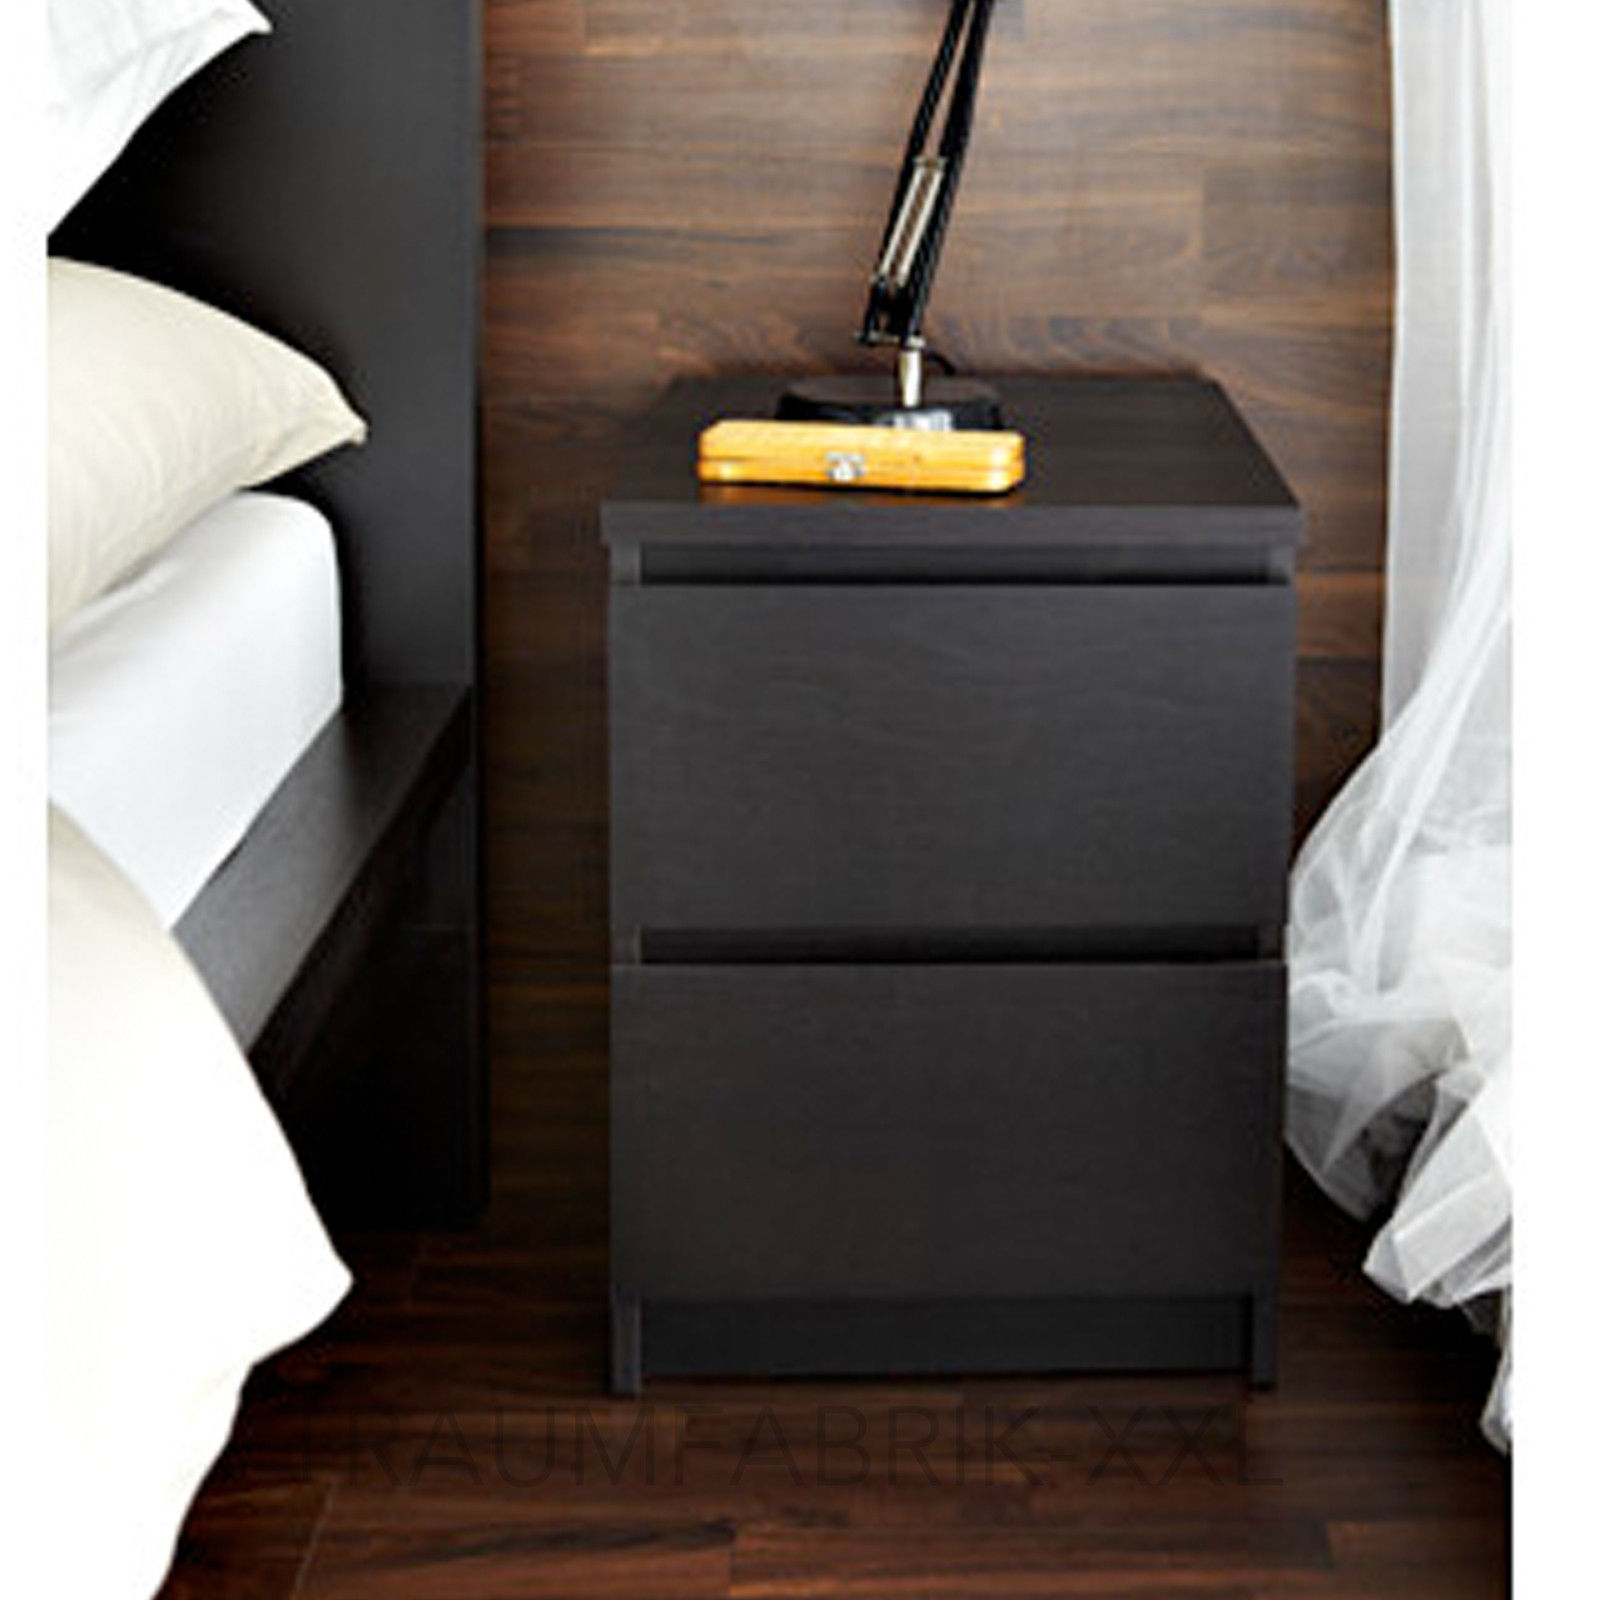 ikea kommode schrank mit 2 schubladen nachtisch schwarz. Black Bedroom Furniture Sets. Home Design Ideas